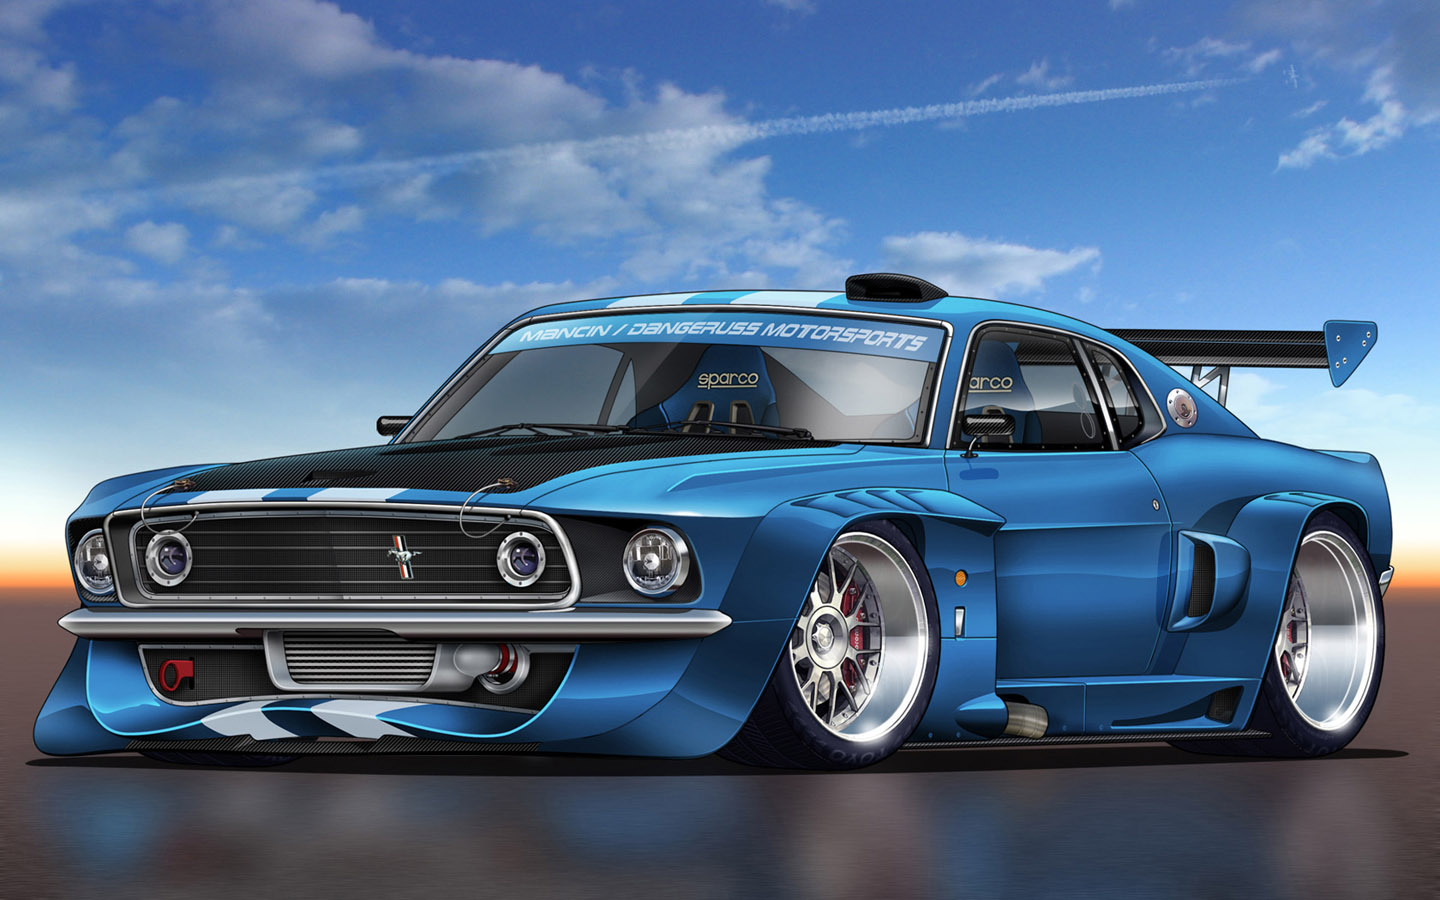 Muscle car wallpaper free download muscle car wallpaper 57331 withjpg 1440x900